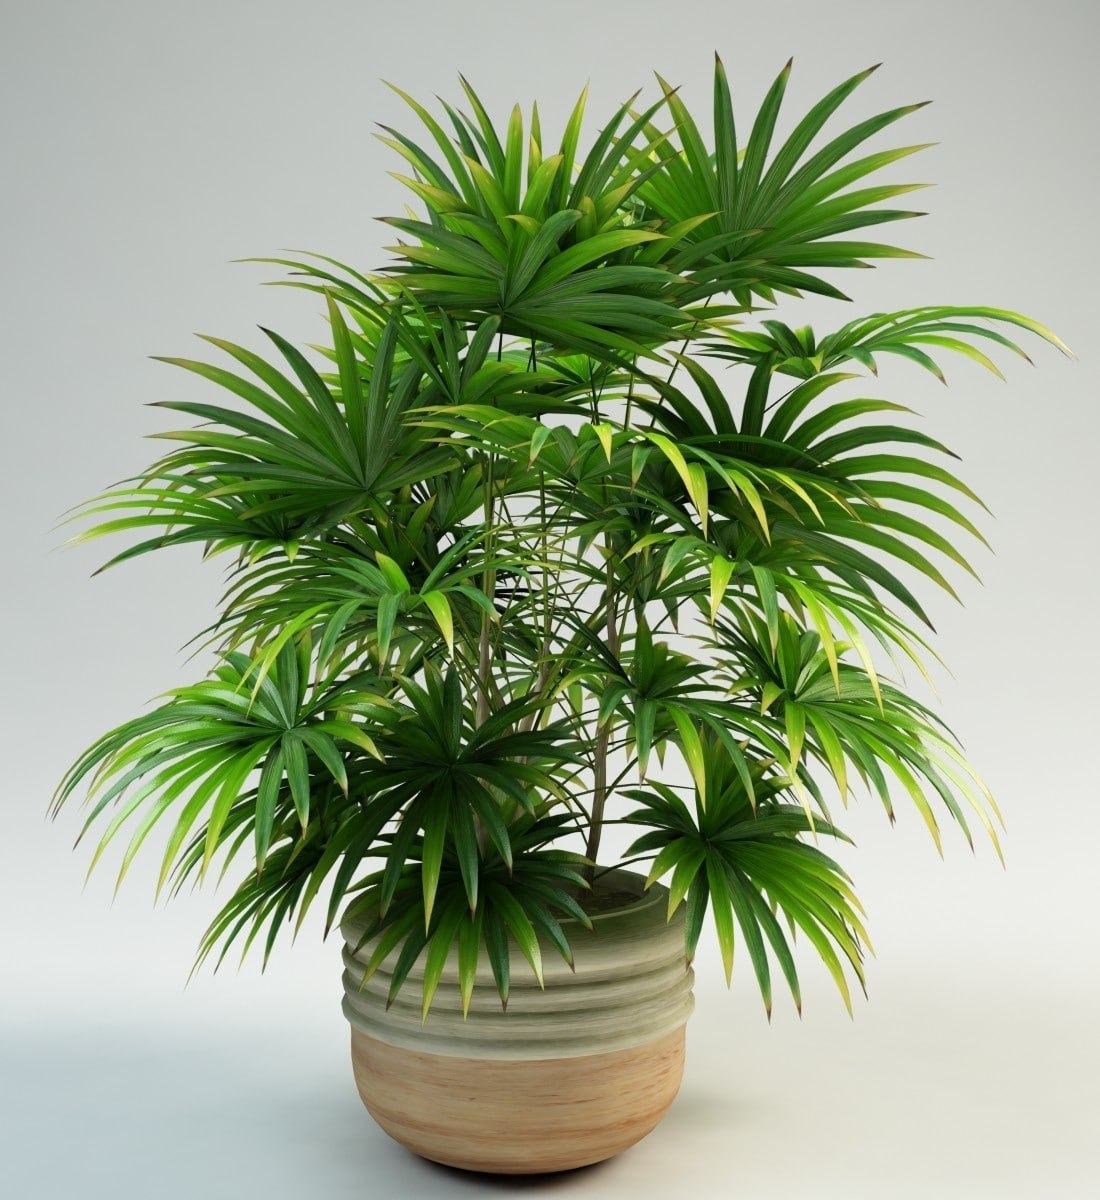 A Complete List of Air Purifying House Plants on spices names, grass names, berries names, wildflowers names, veggies names, plants names, pets names, design names, garden names, cacti names, photography names, nuts names, furniture names, weather names, insects names, ornamental grasses names, herbs names, leaves names, lawn care names, pottery names,